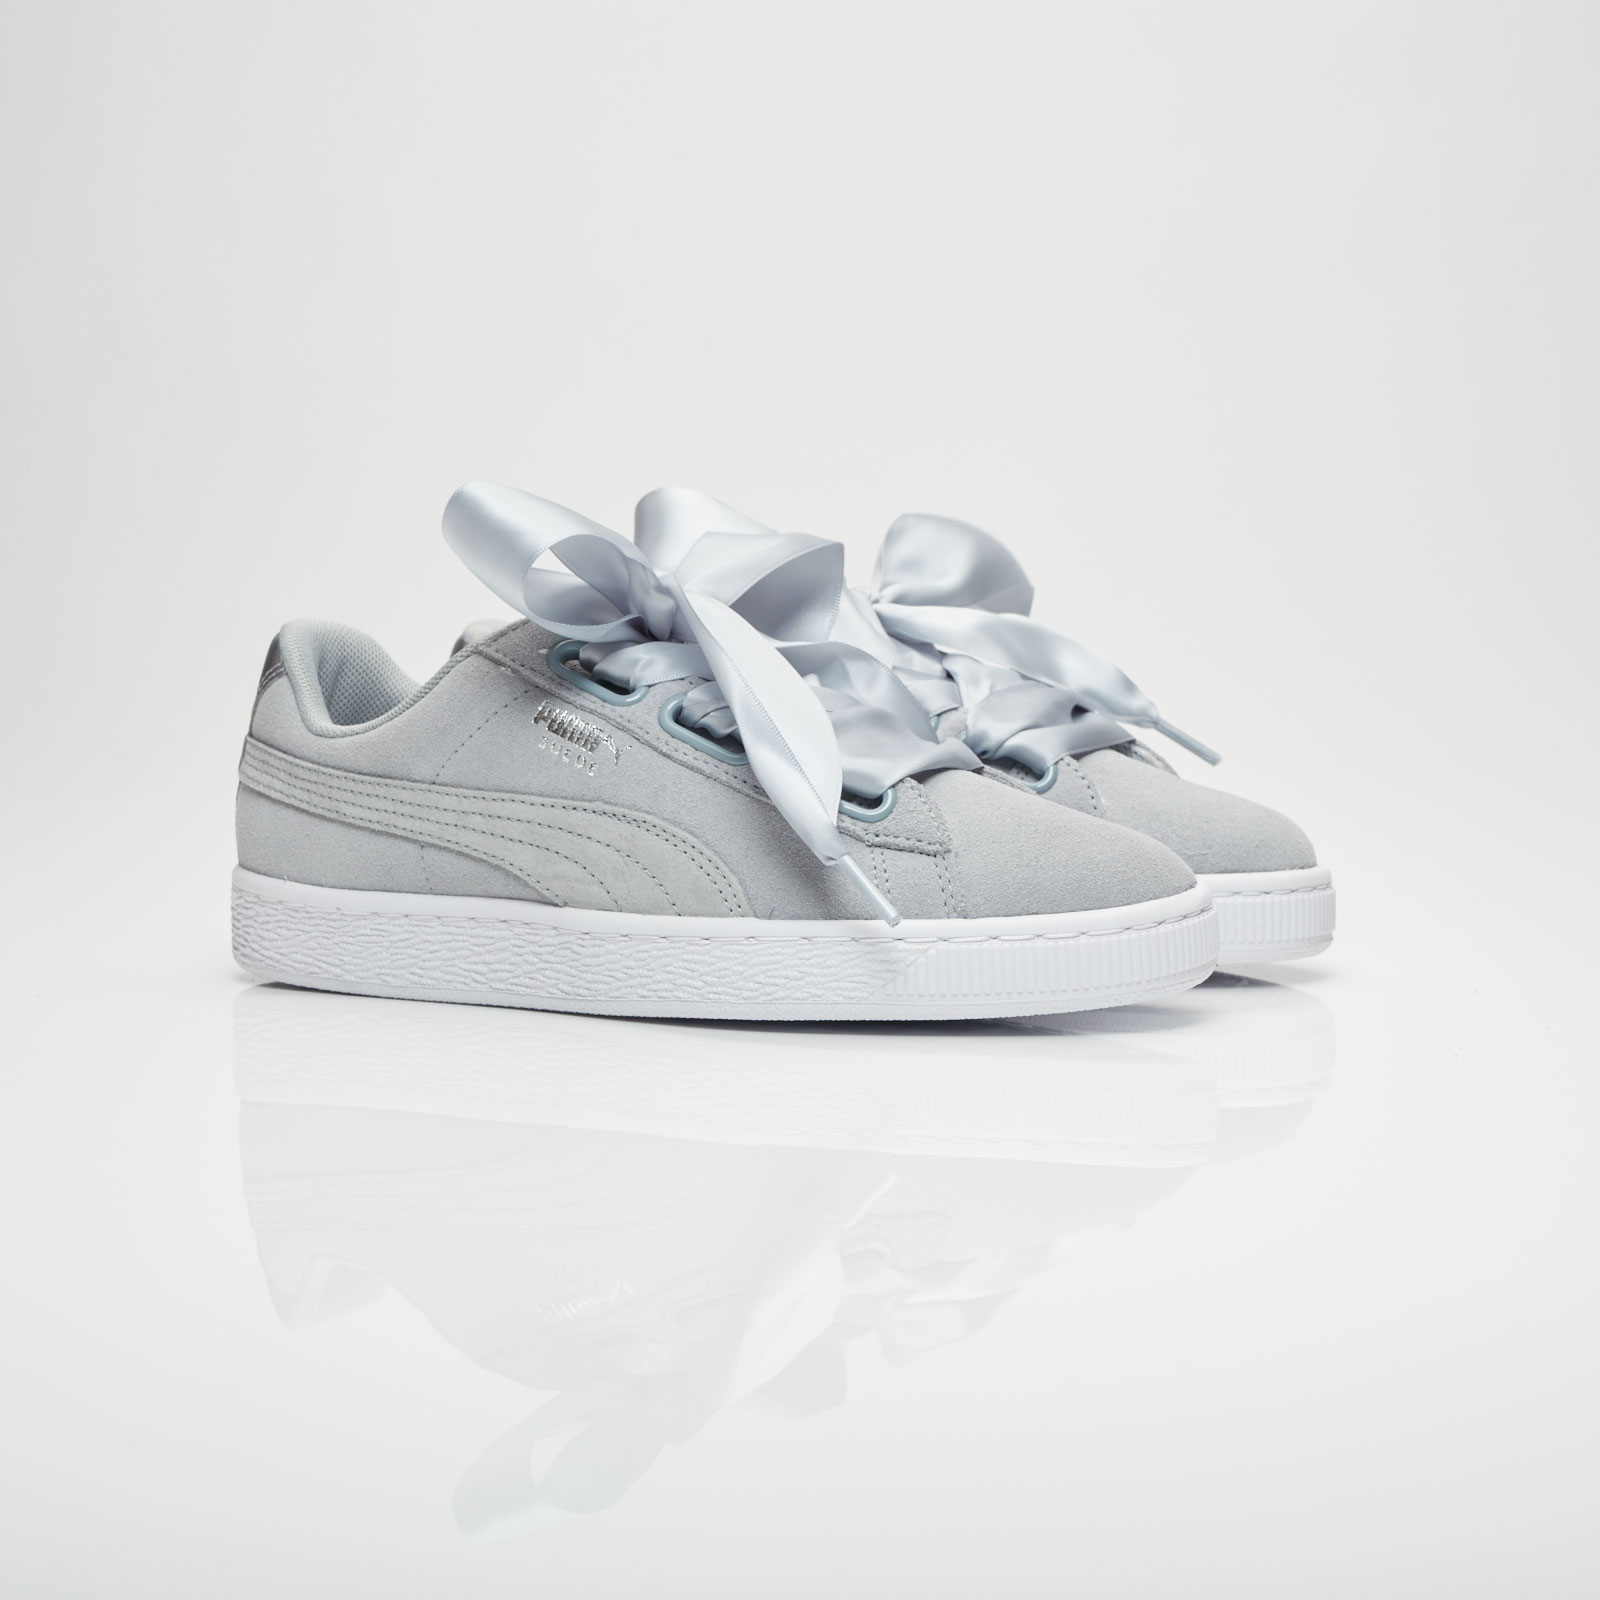 finest selection dcc31 9a9ef Puma Puma Suede Heart Safari Wns - 364083-02 ...